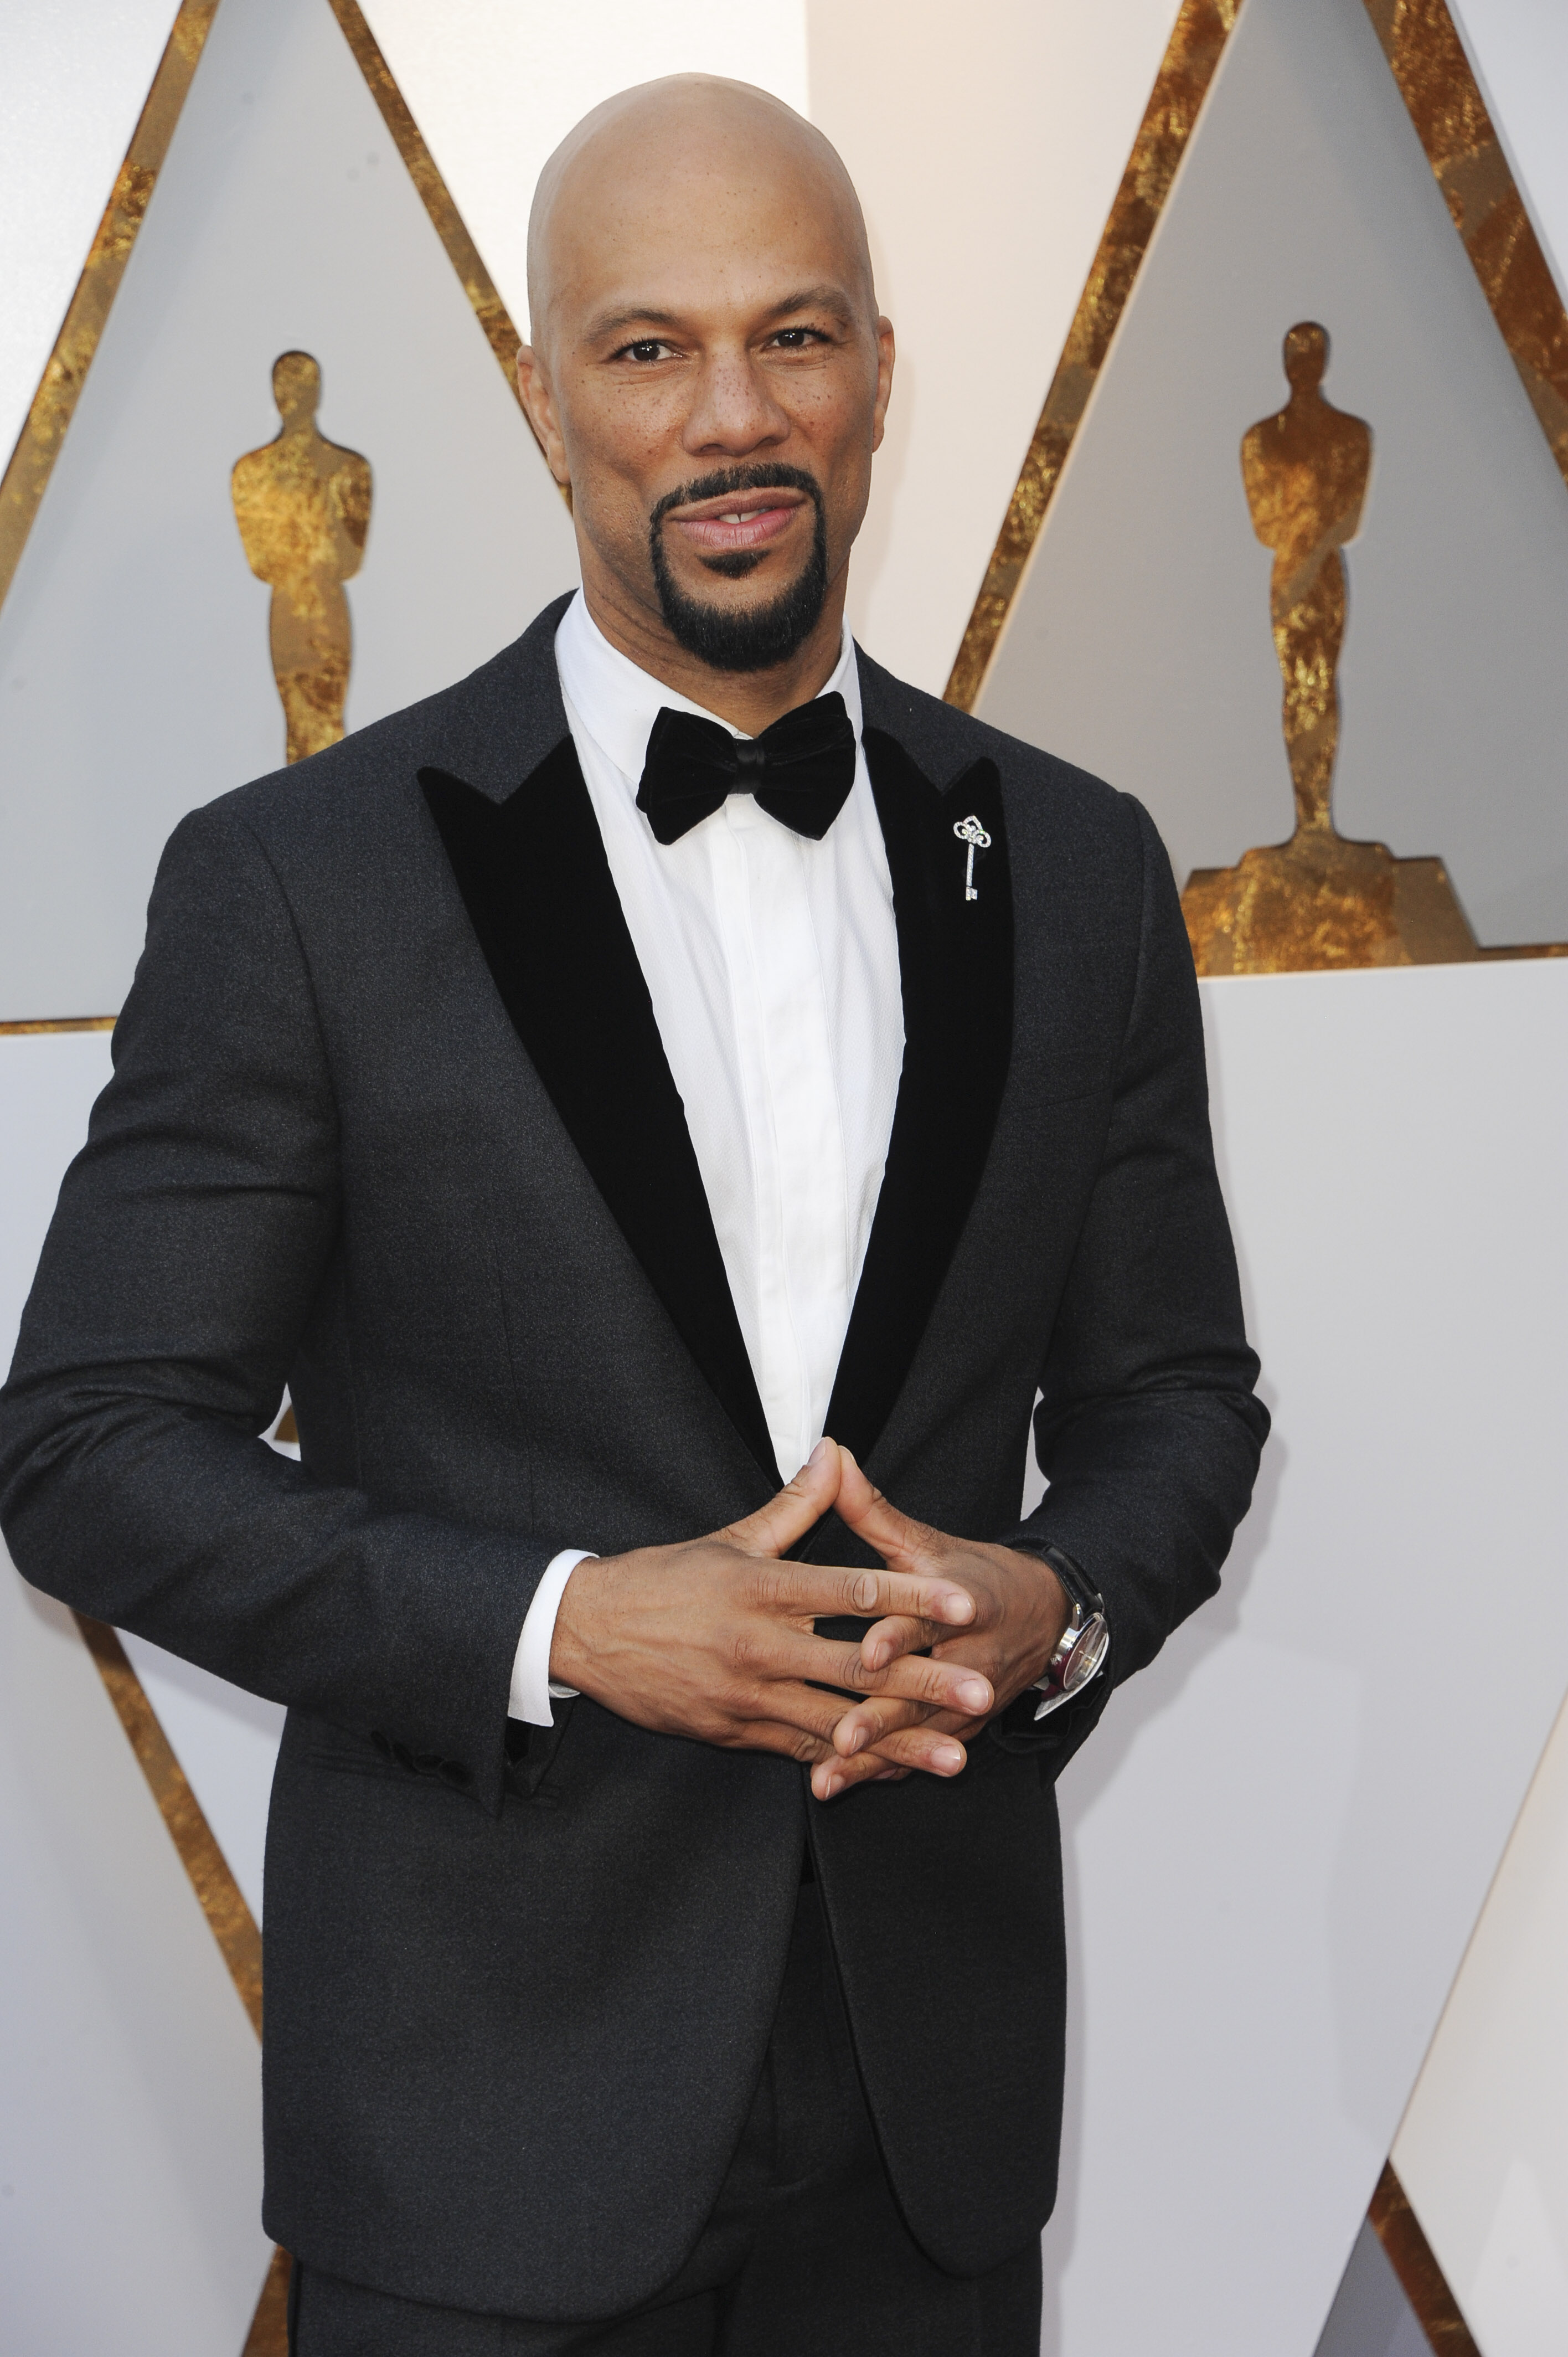 Common arrives at the 90th Annual Academy Awards (Oscars) held at the Dolby Theater in Hollywood, California. (Image: Apega/WENN.com)<p></p>